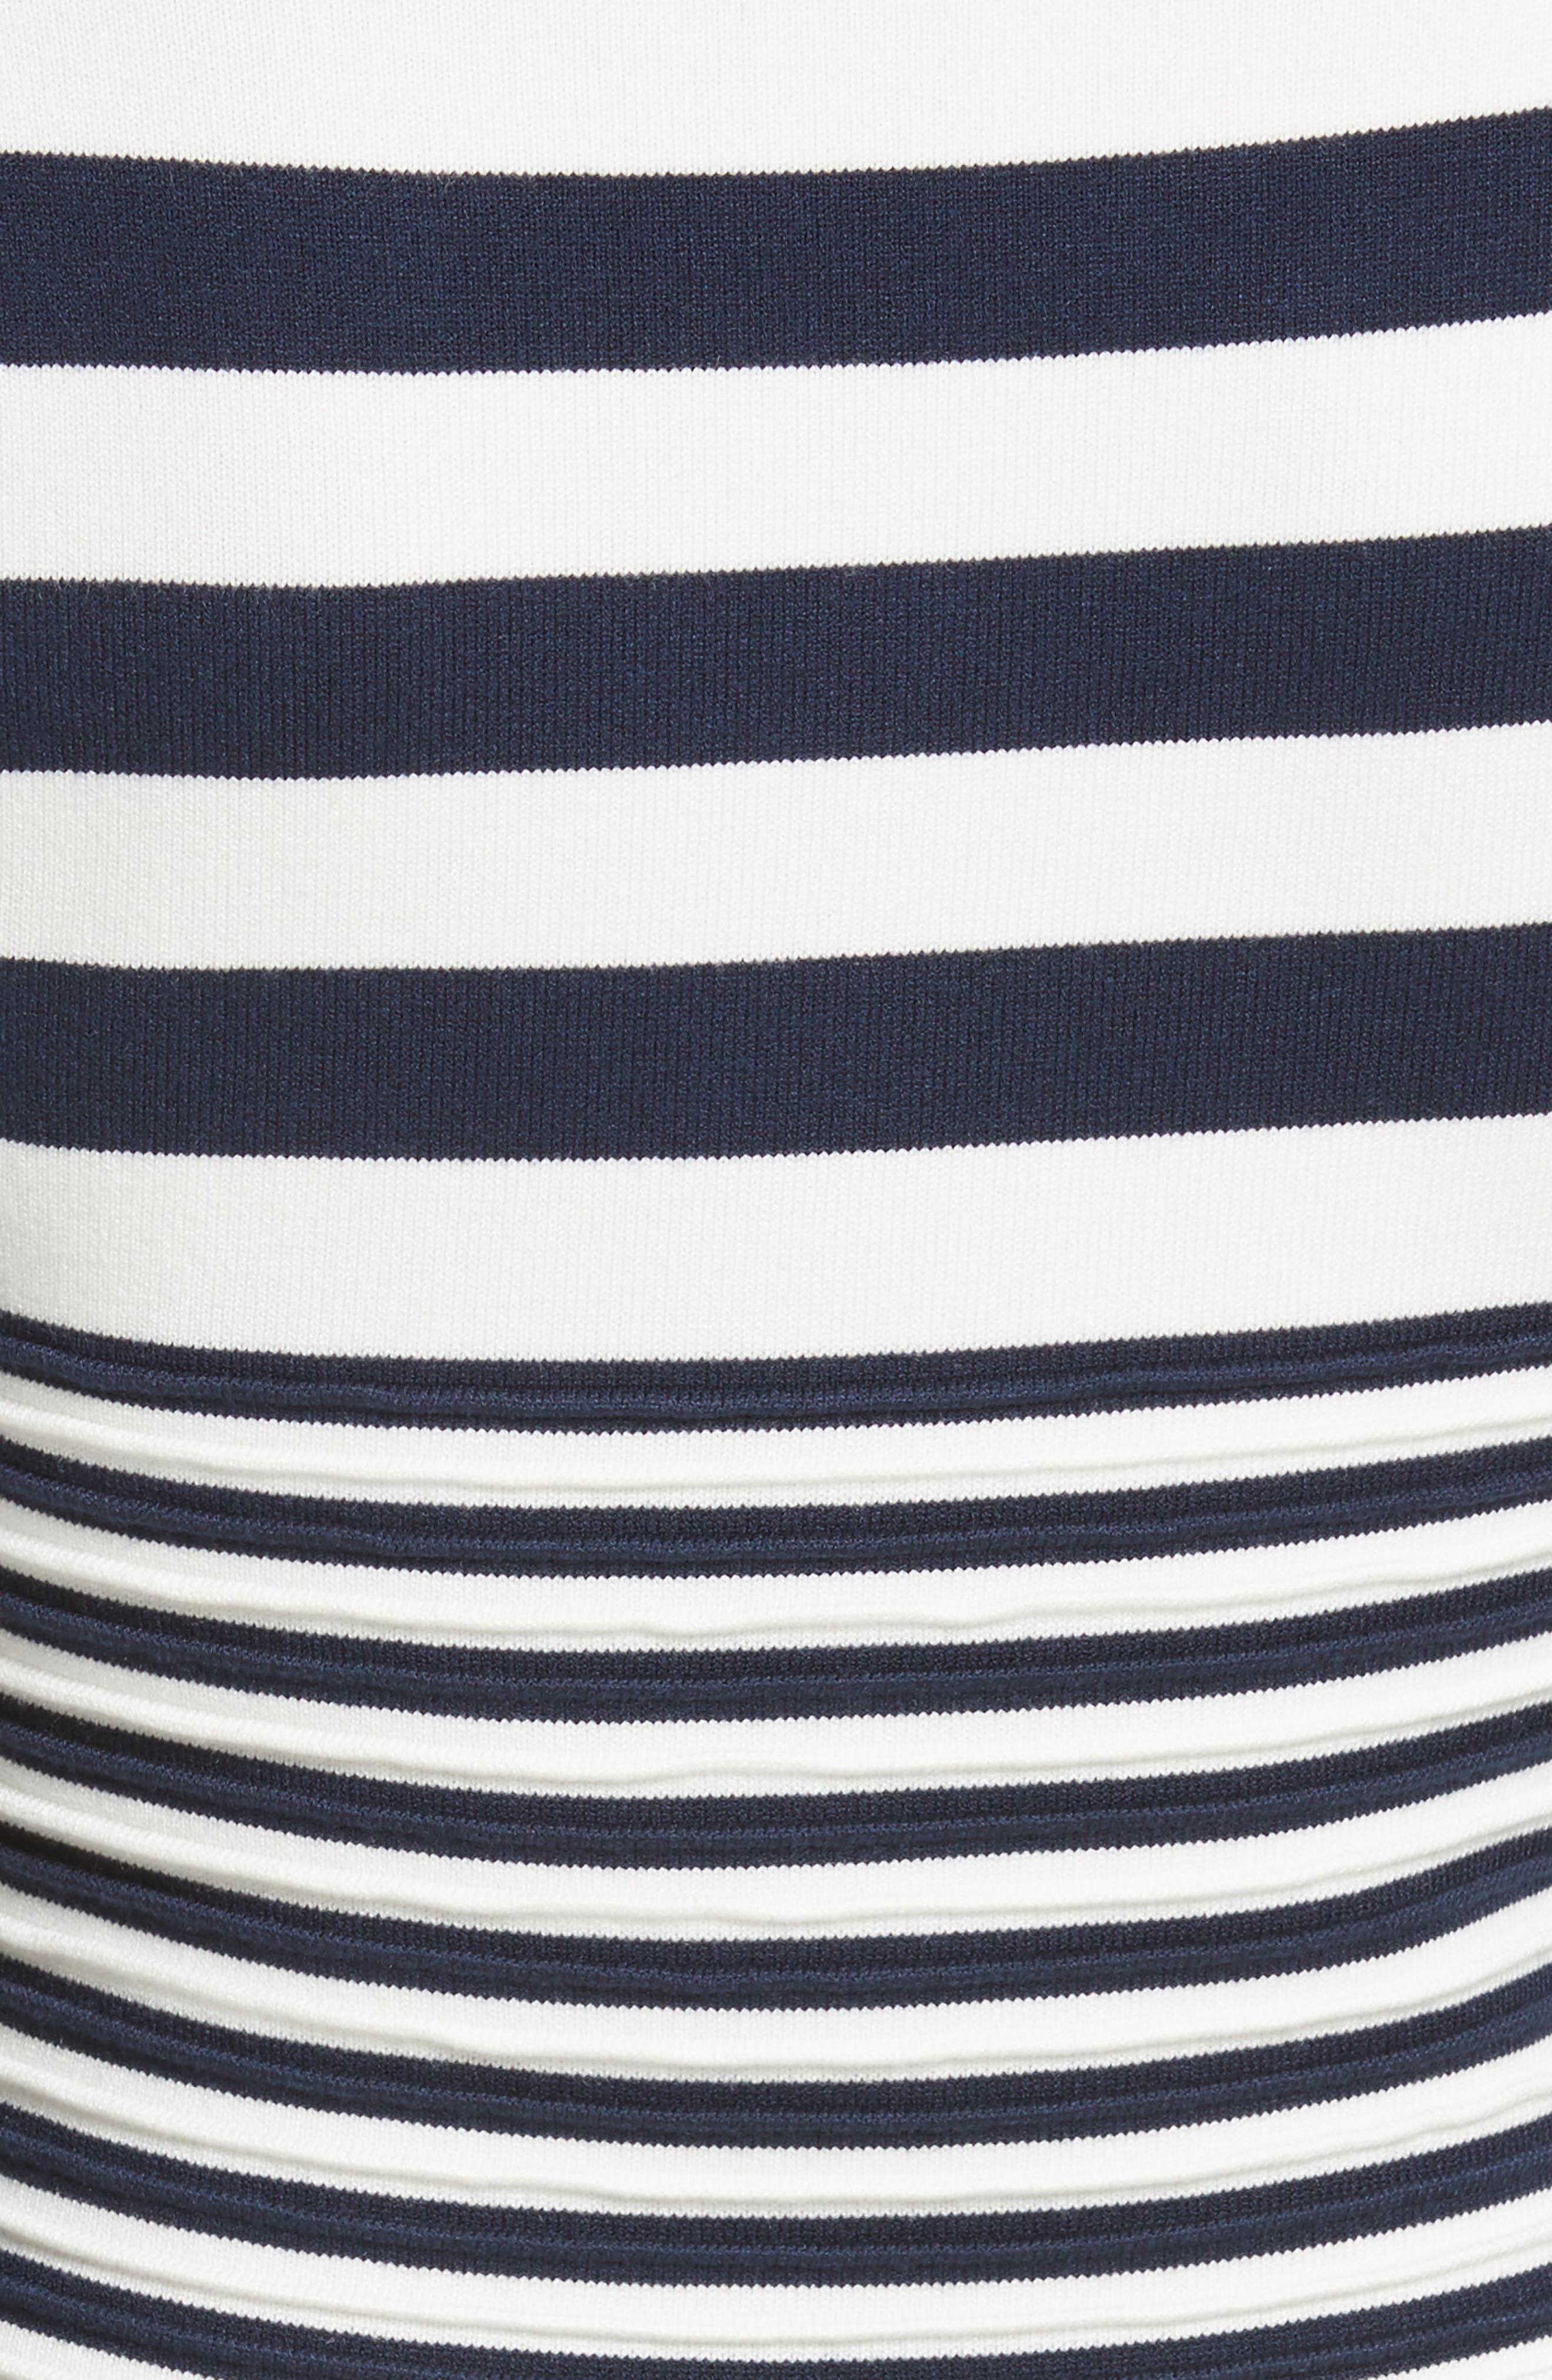 Striped Ottoman Fit & Flare Dress,                             Alternate thumbnail 5, color,                             155